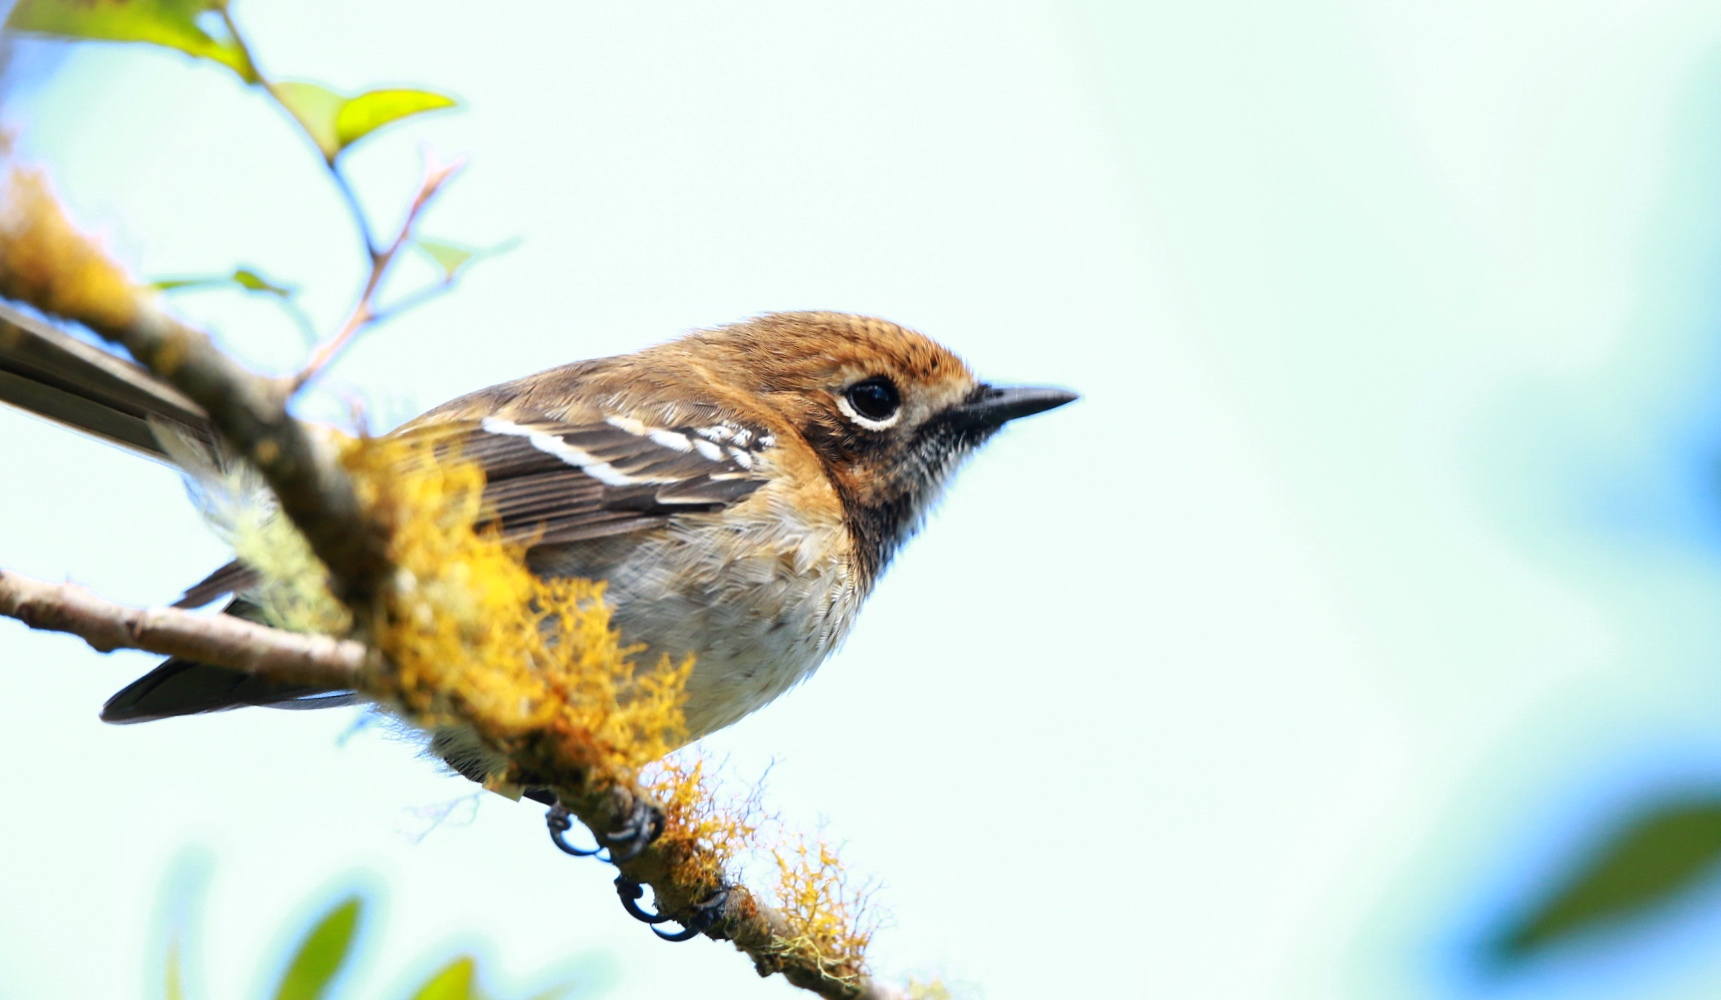 Oʻahu ʻElepaio - monarch flycatcher